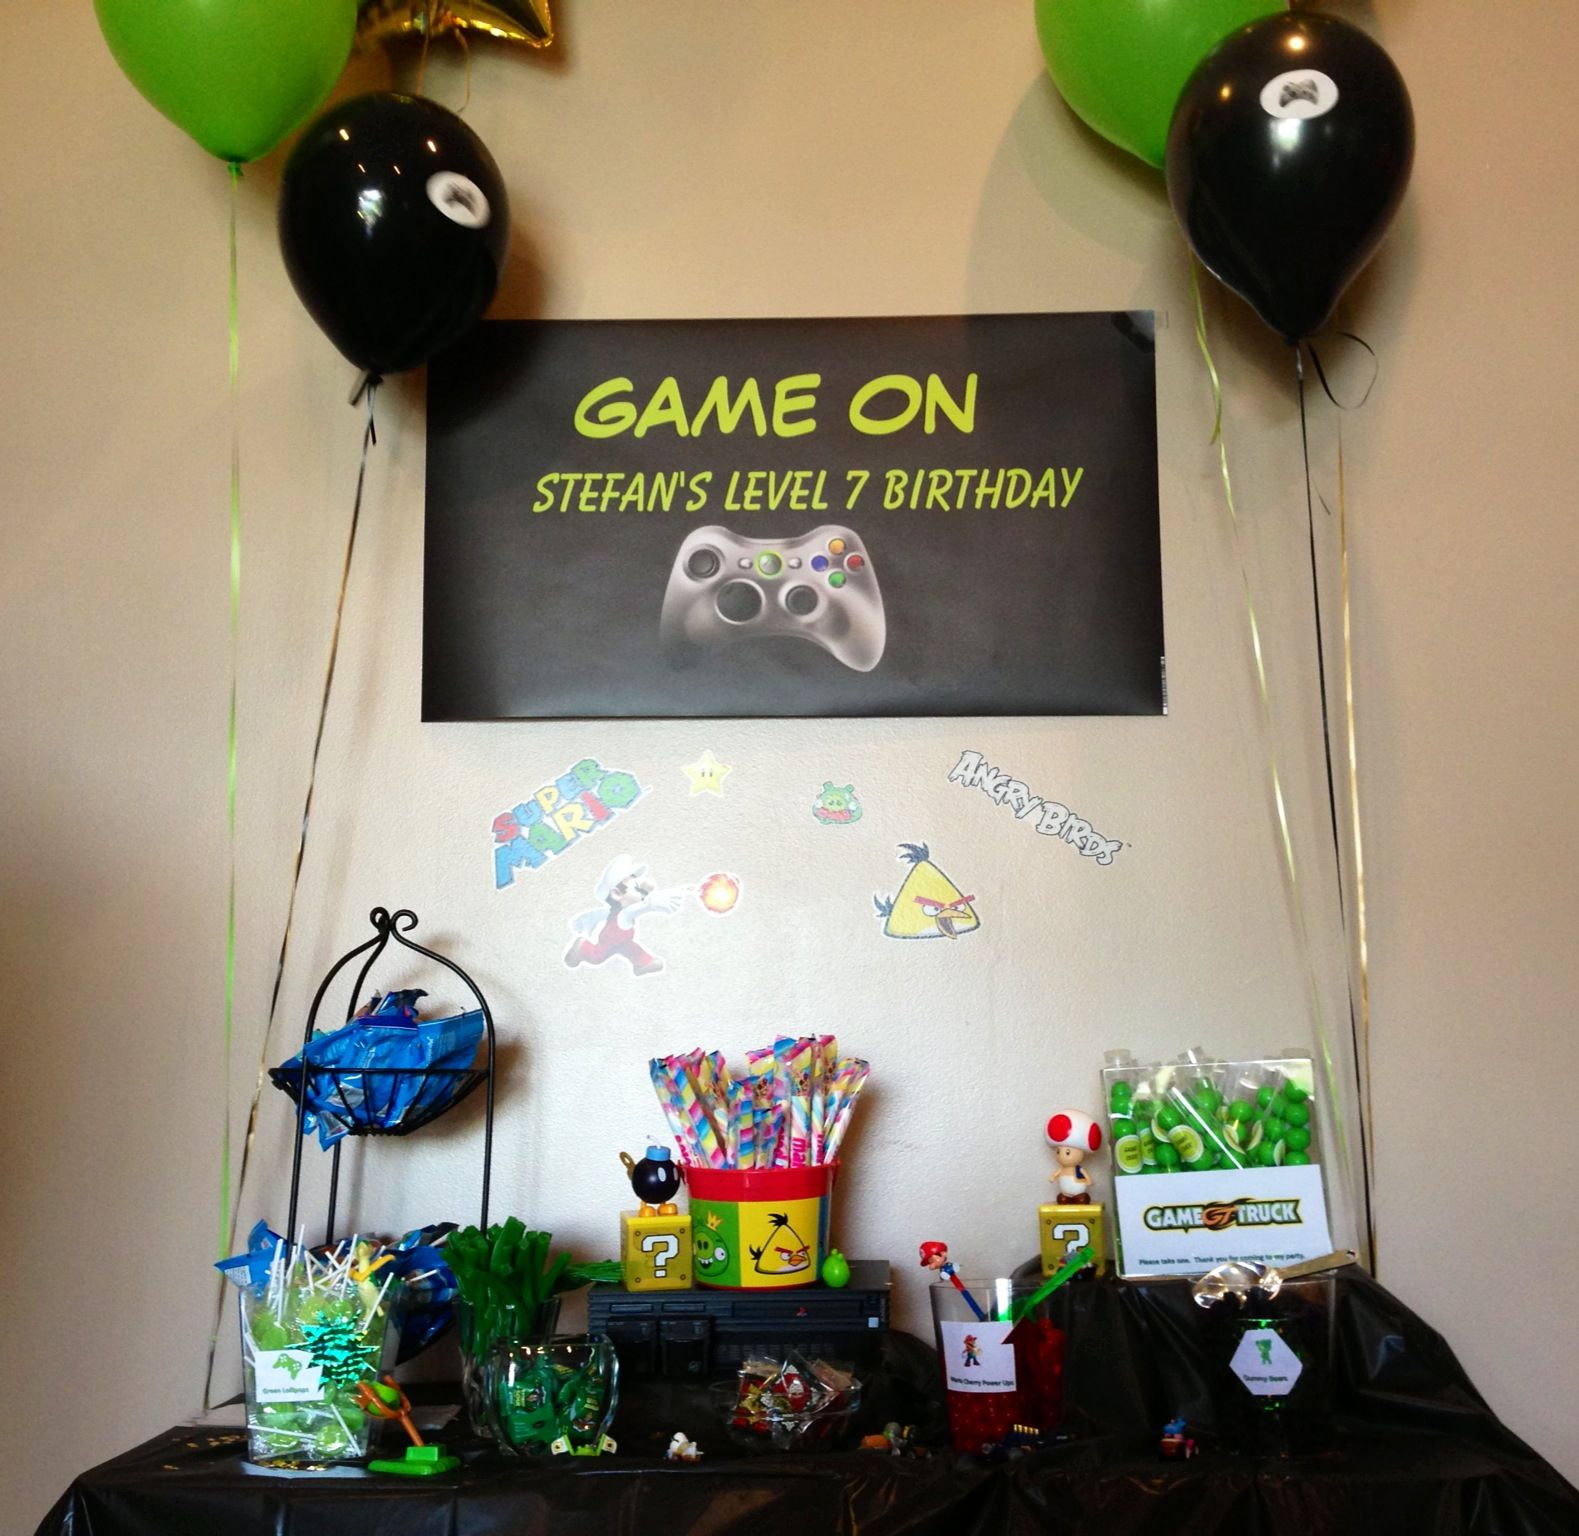 Our game truck party Video games birthday party